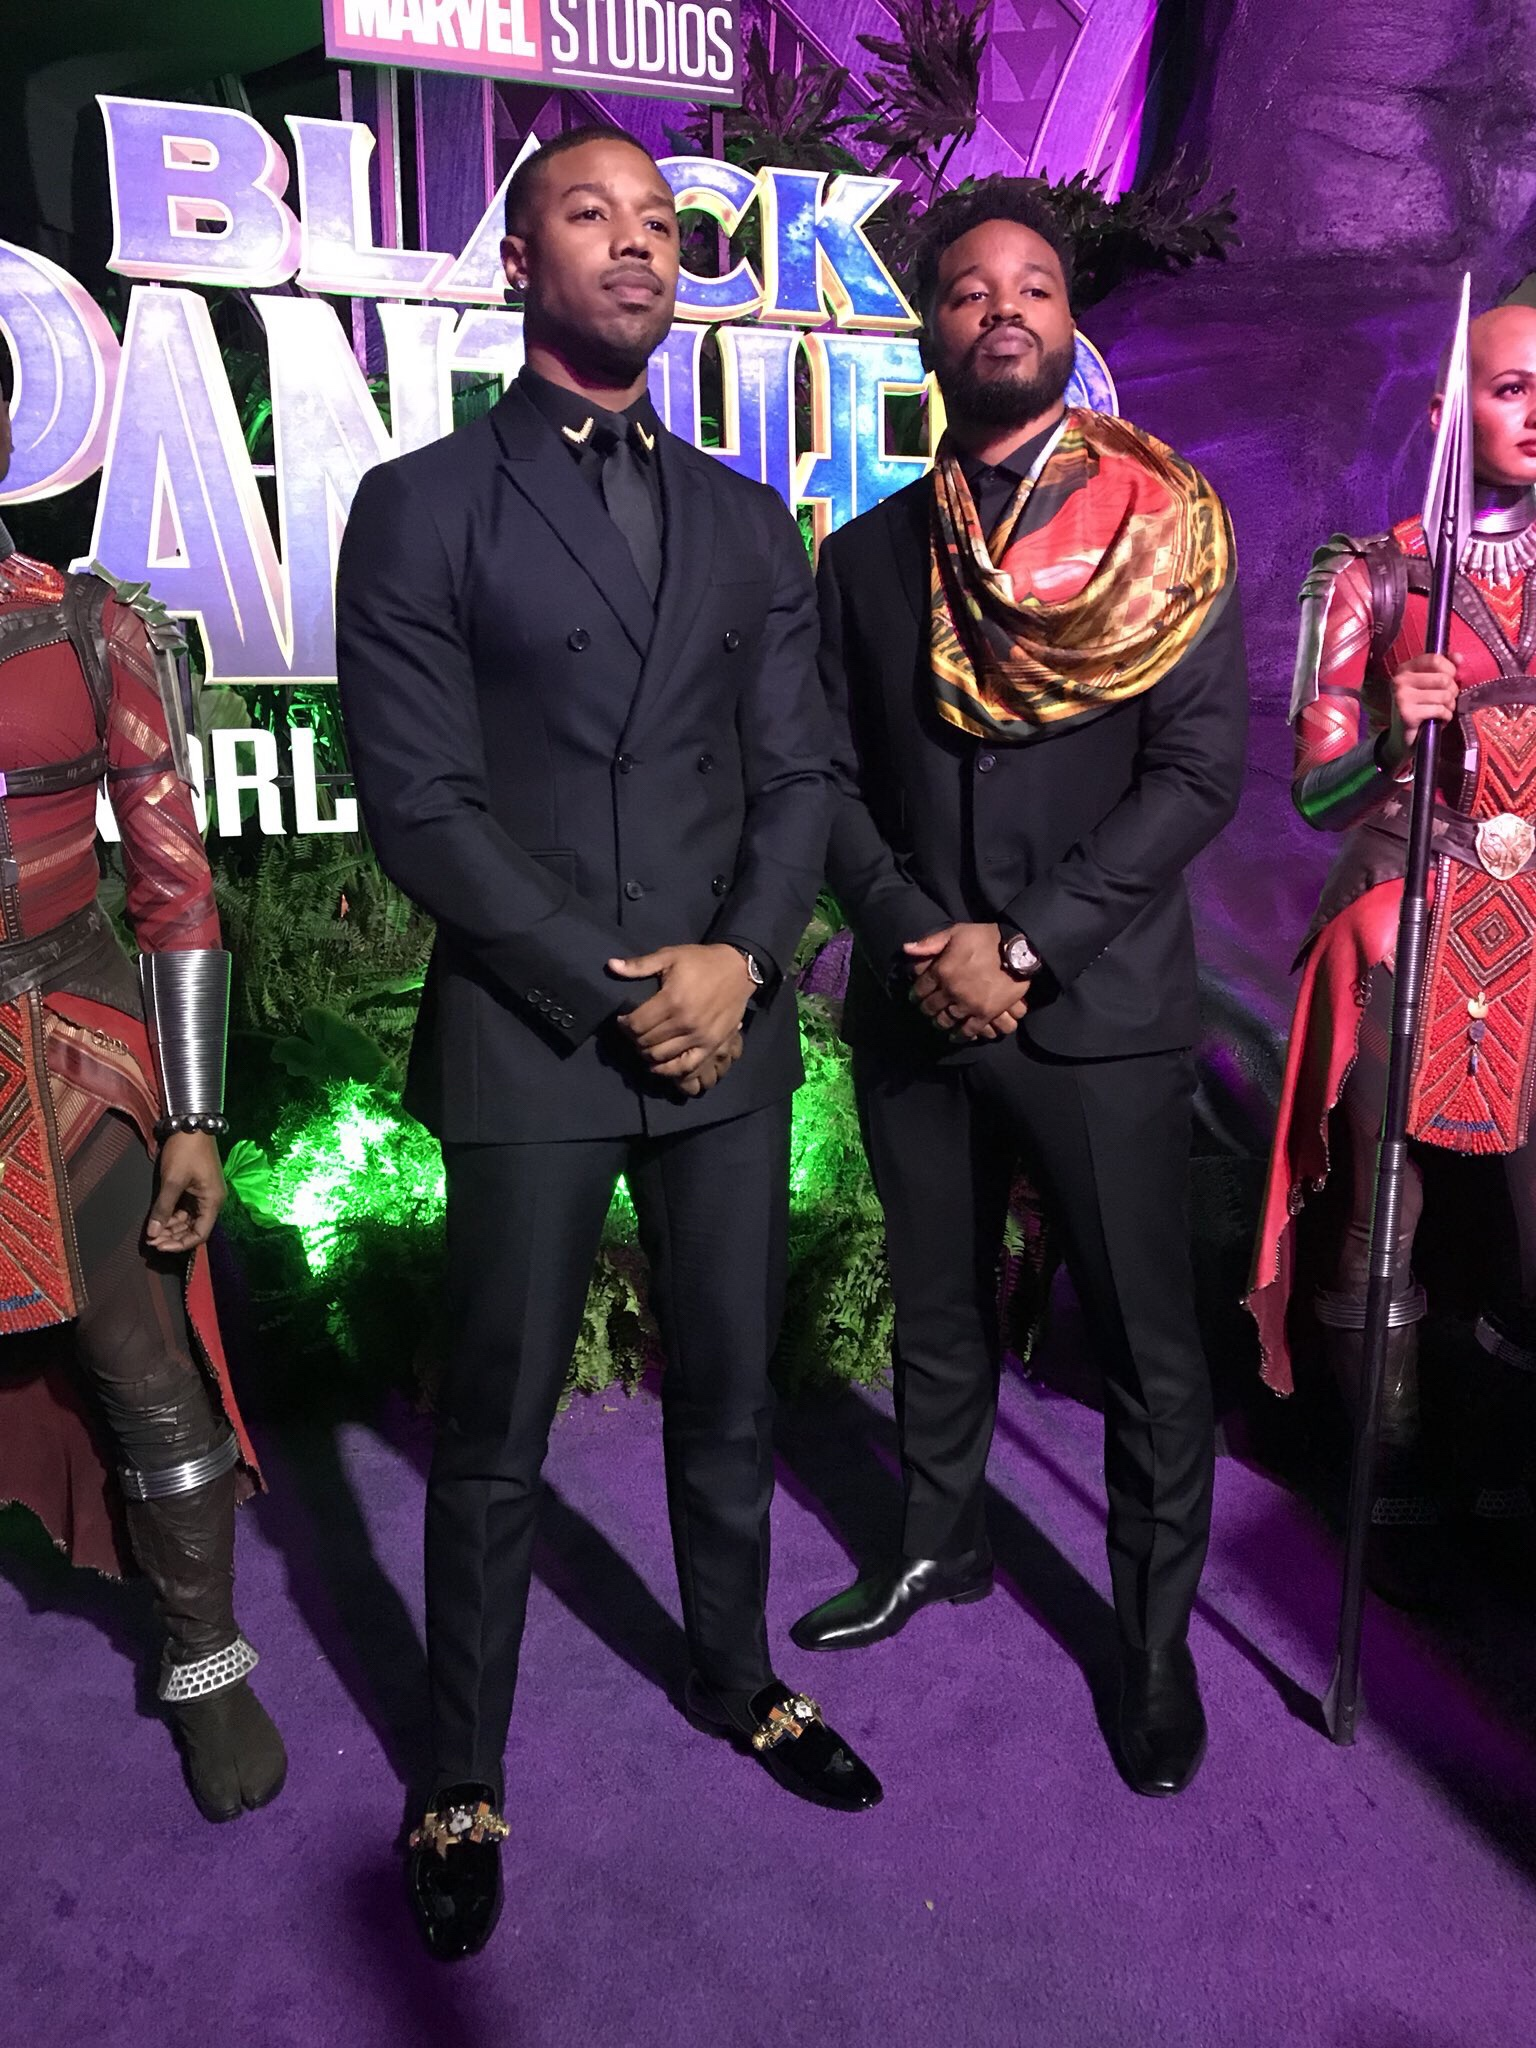 Director Ryan Coogler's Filmmaking Strategy #BlackPanther